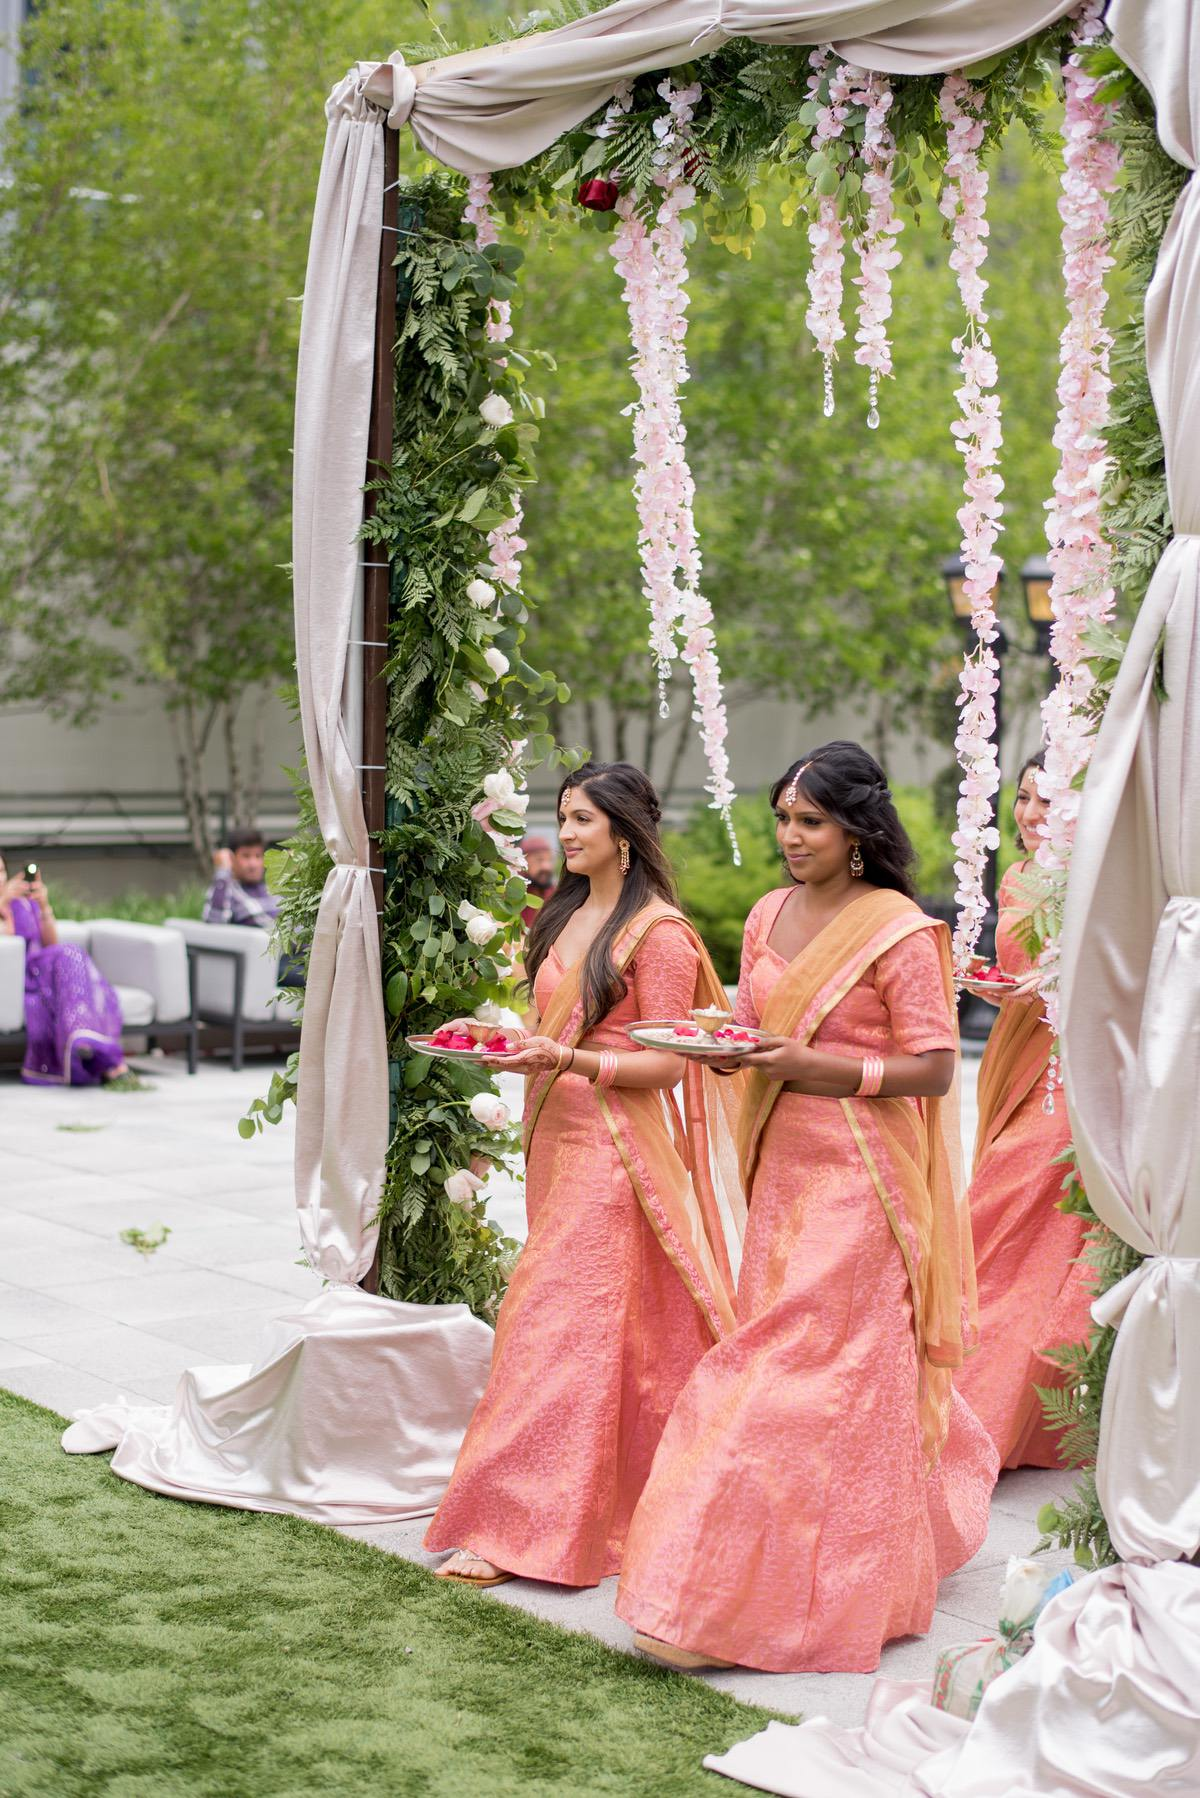 Le_Cape_Weddings_-_Serena_-_Chicago_South_Asian_Wedding_-_Ceremony_--24.jpg